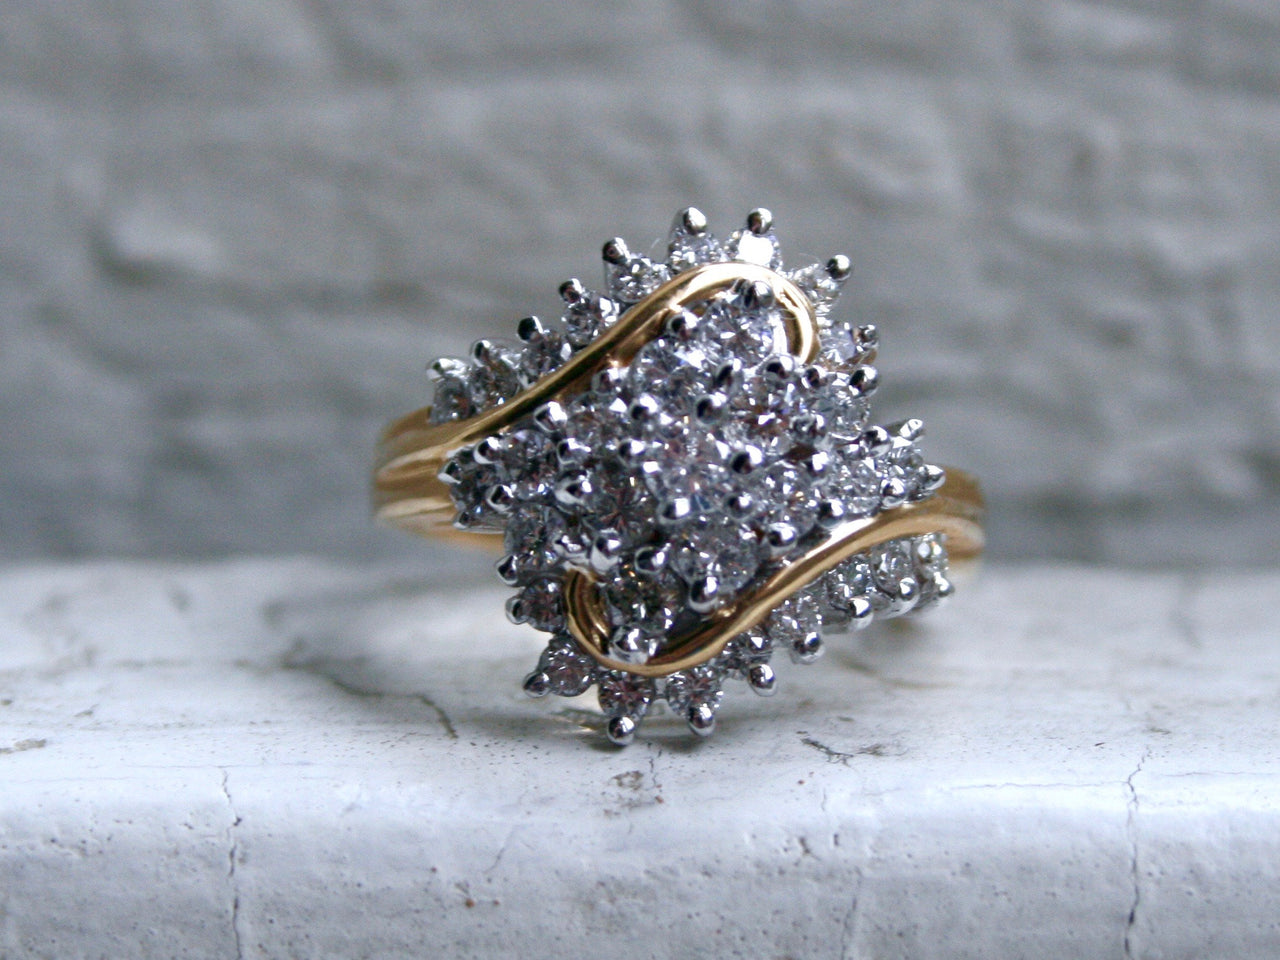 Lovely Vintage 14K Yellow Gold Diamond Cluster Ring Engagement Ring.